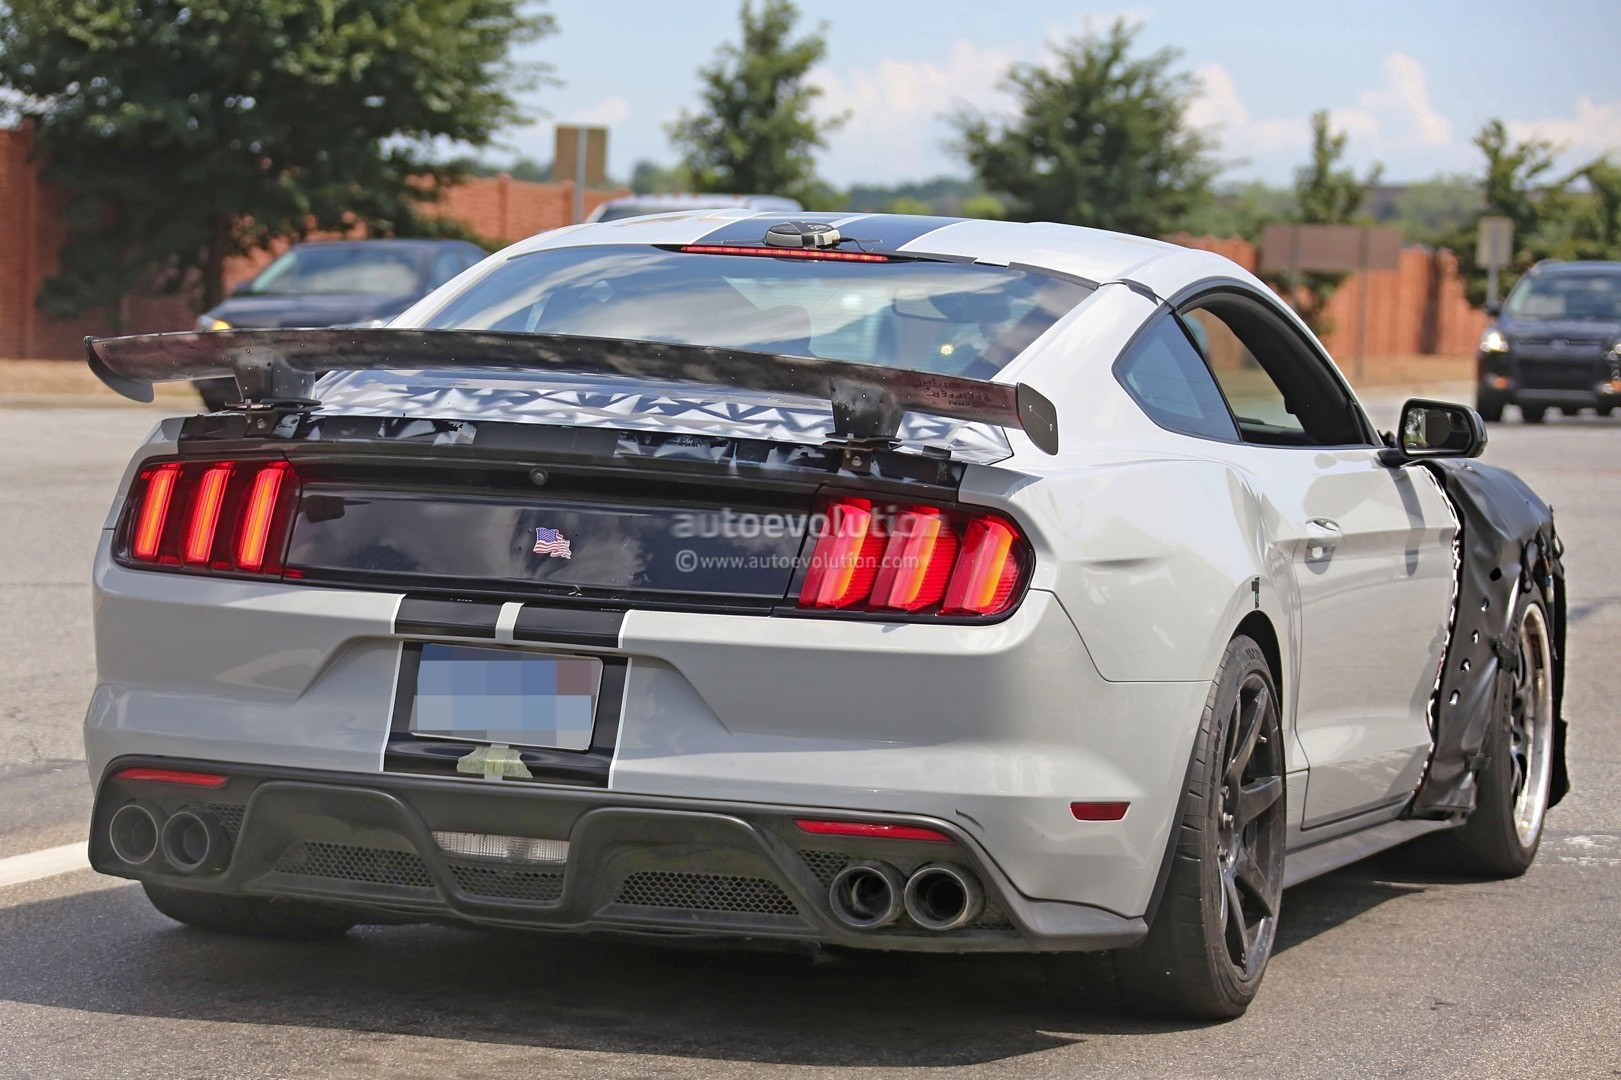 2018 ford mustang shelby gt500 or 2018 ford mustang mach 1